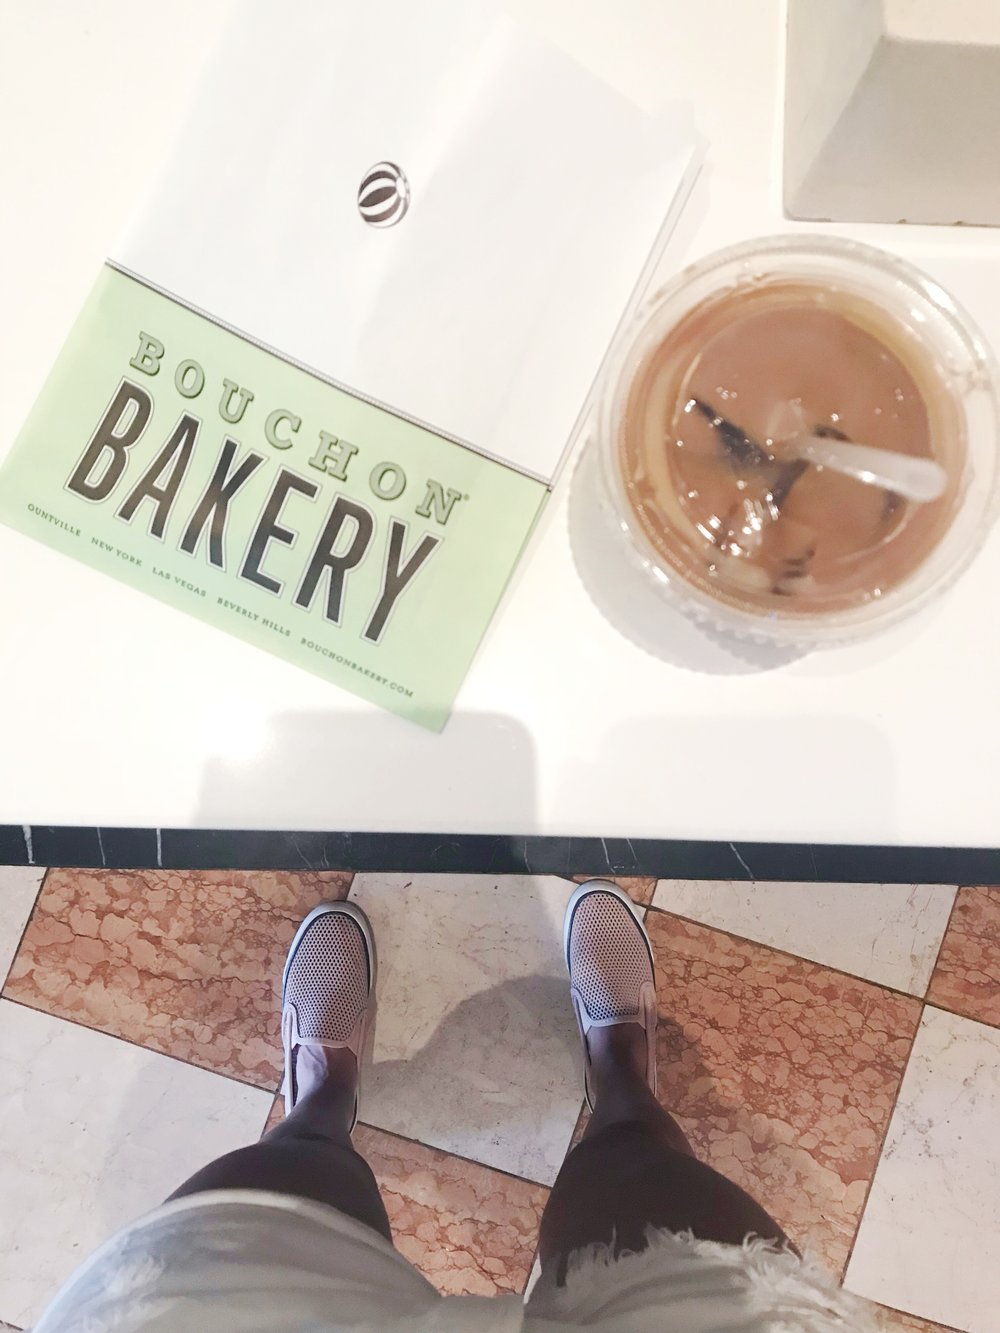 Grabbing some cold brew and a cookie at Bouchon Bakery